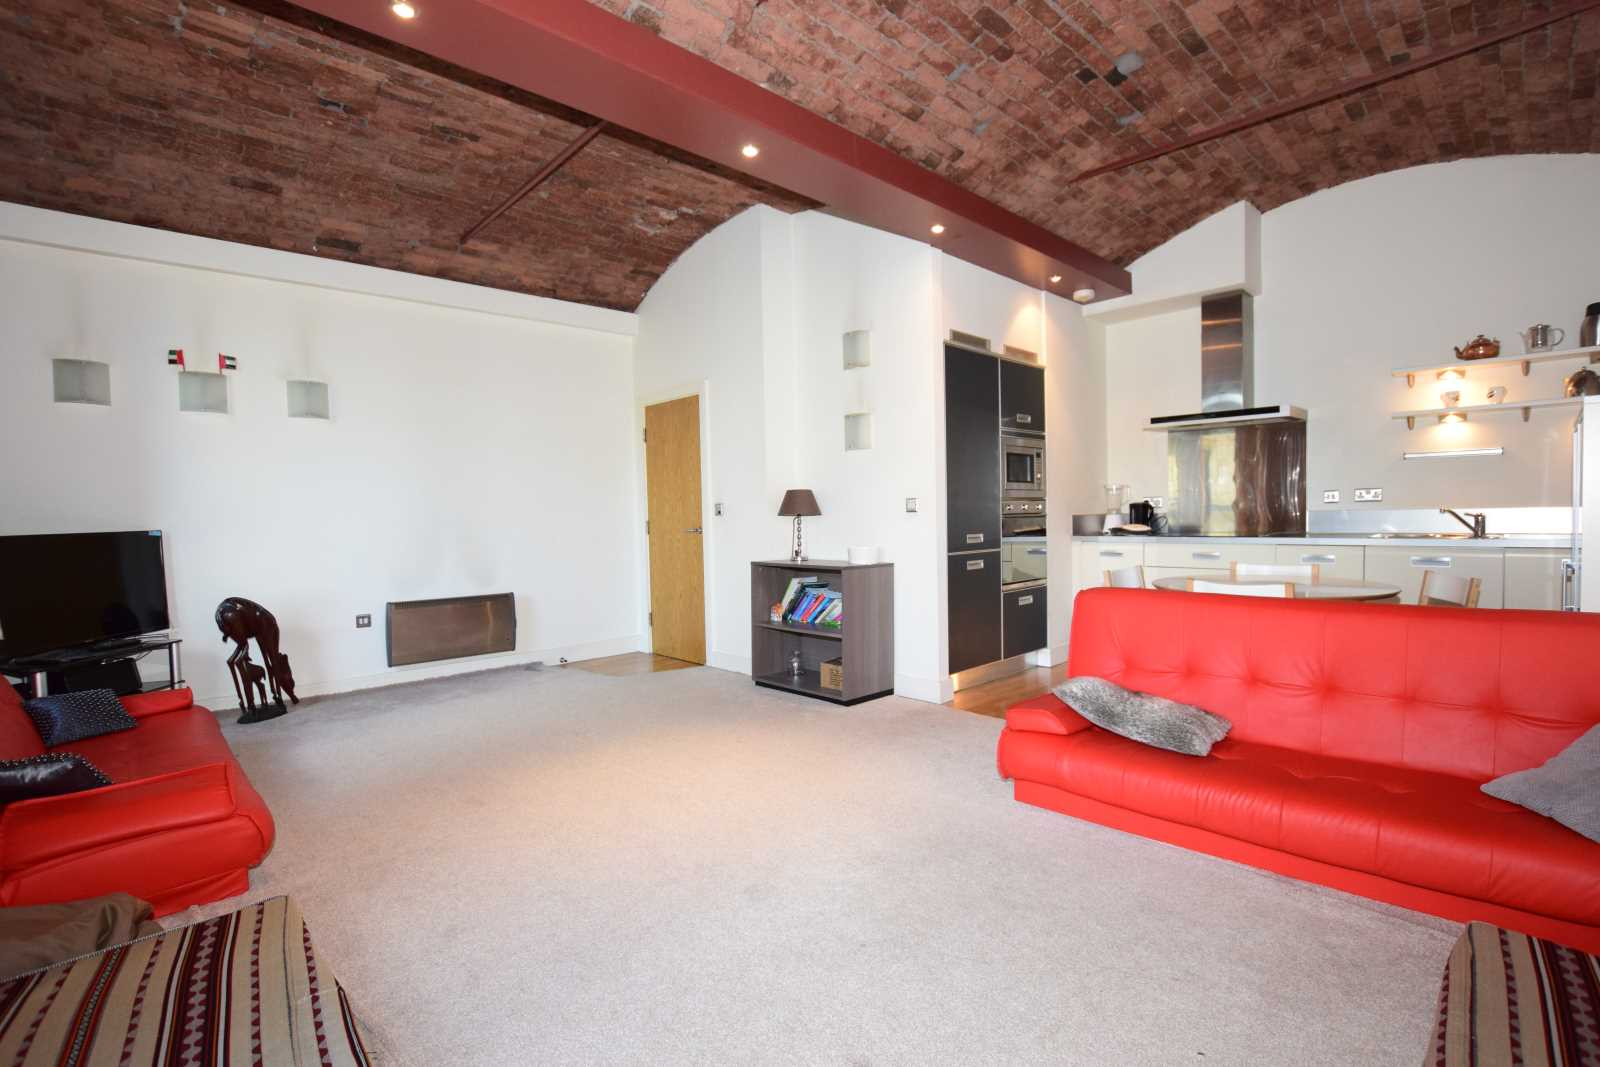 Apartment 10, The Melting Point, Huddersfield, HD1 3BB